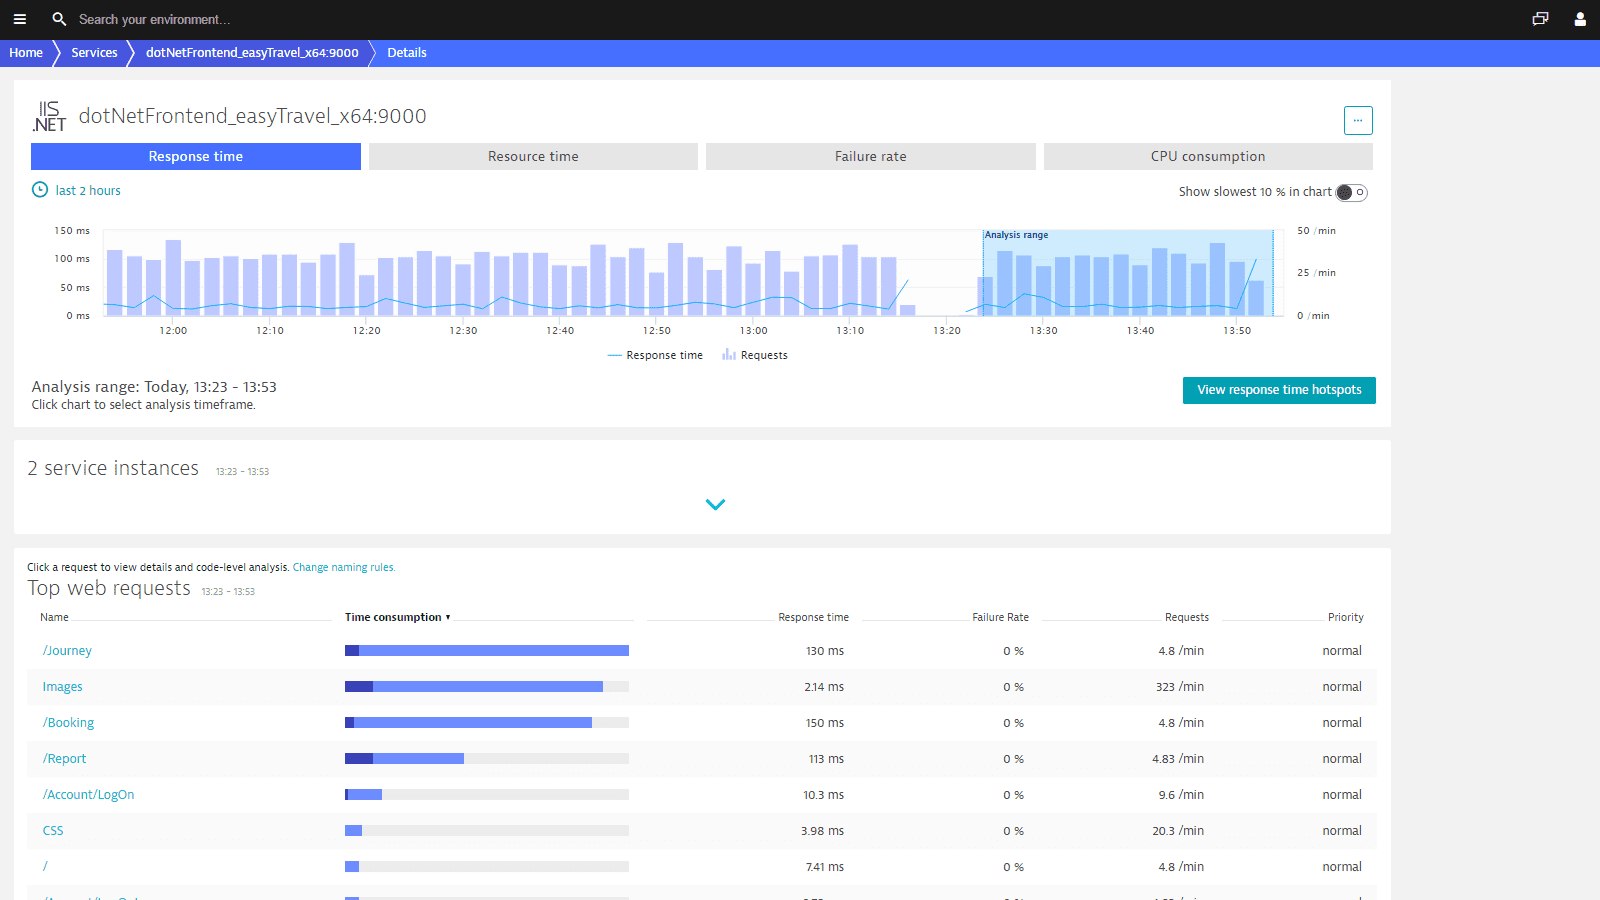 The Dynatrace .NET monitor lets you see the top contributors for response time, failure rate and CPU consumption.